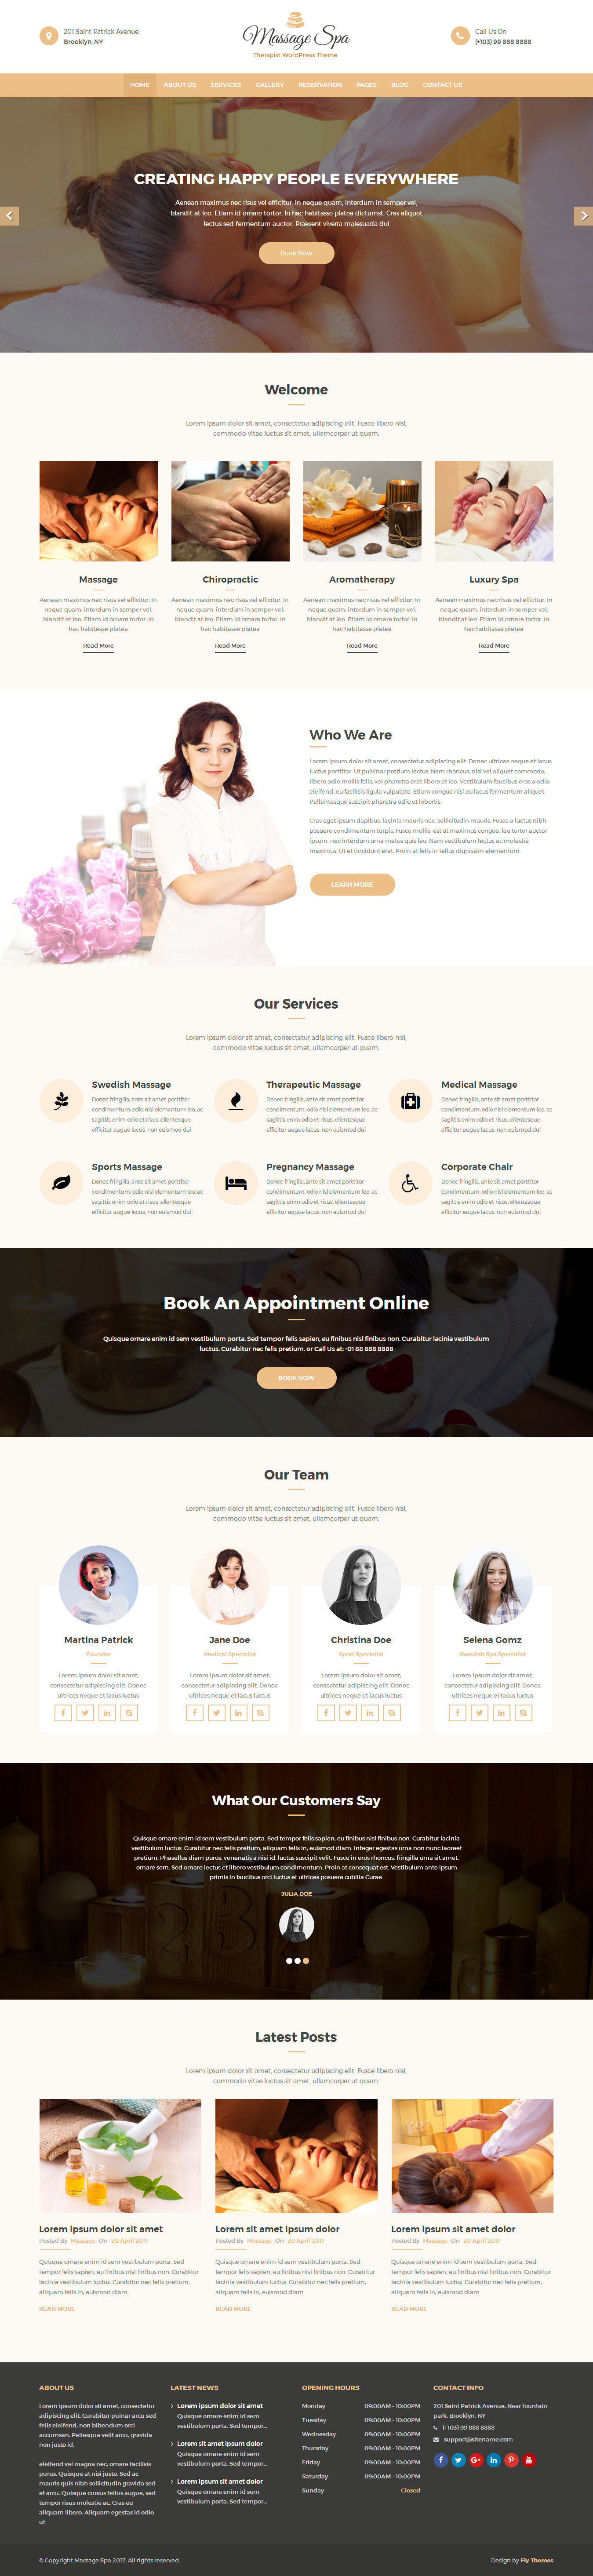 massage-spa-wordpress-theme